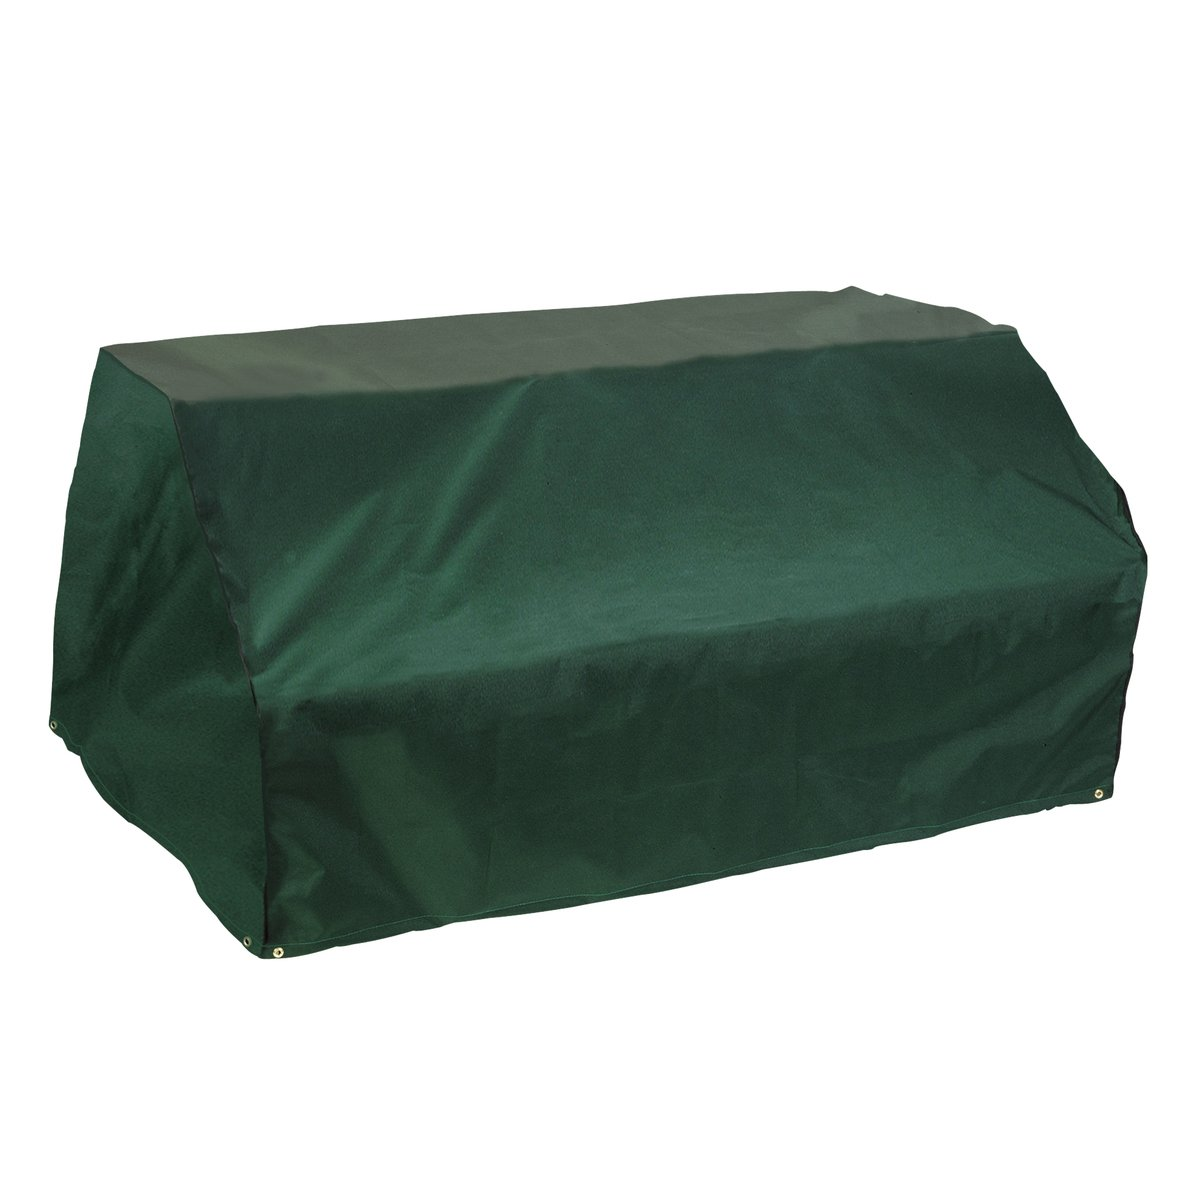 Bosmere C630 Weatherproof 8-Seat Picnic Table Cover, 76'' L x 62'' W x 32'' H, Green